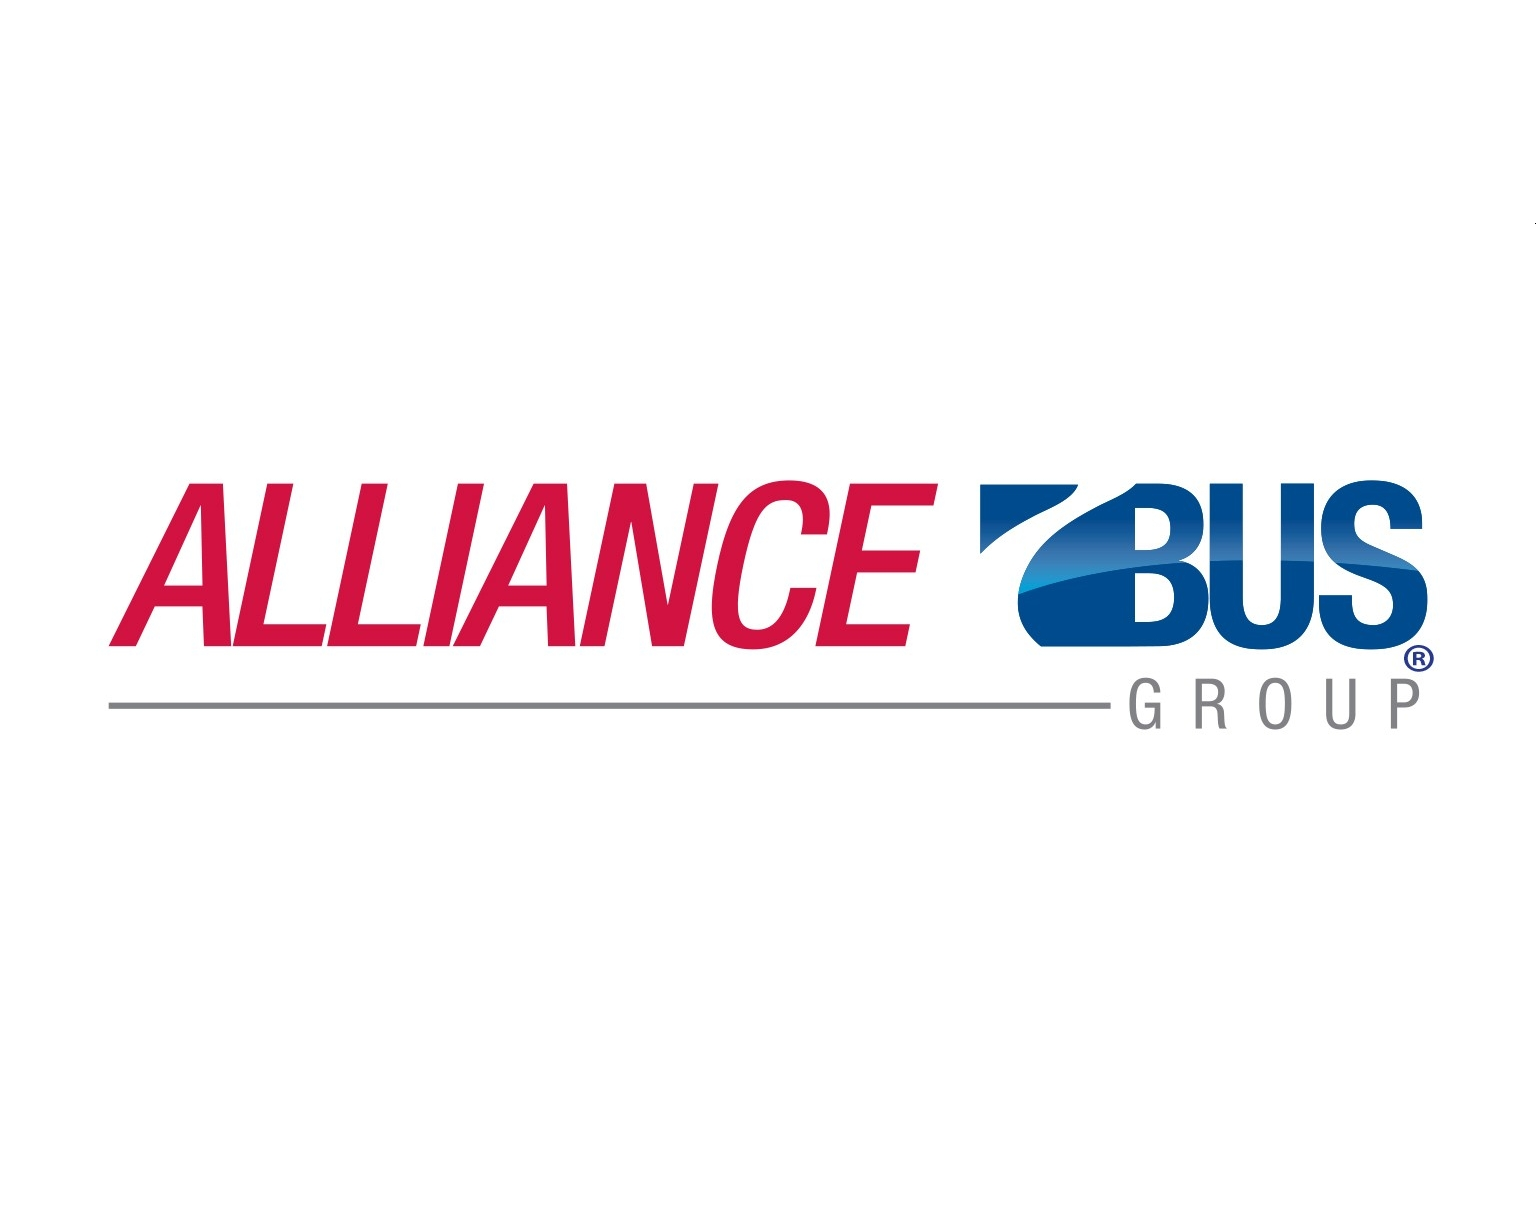 Alliance Bus Group adds safety products to combat COVID-19